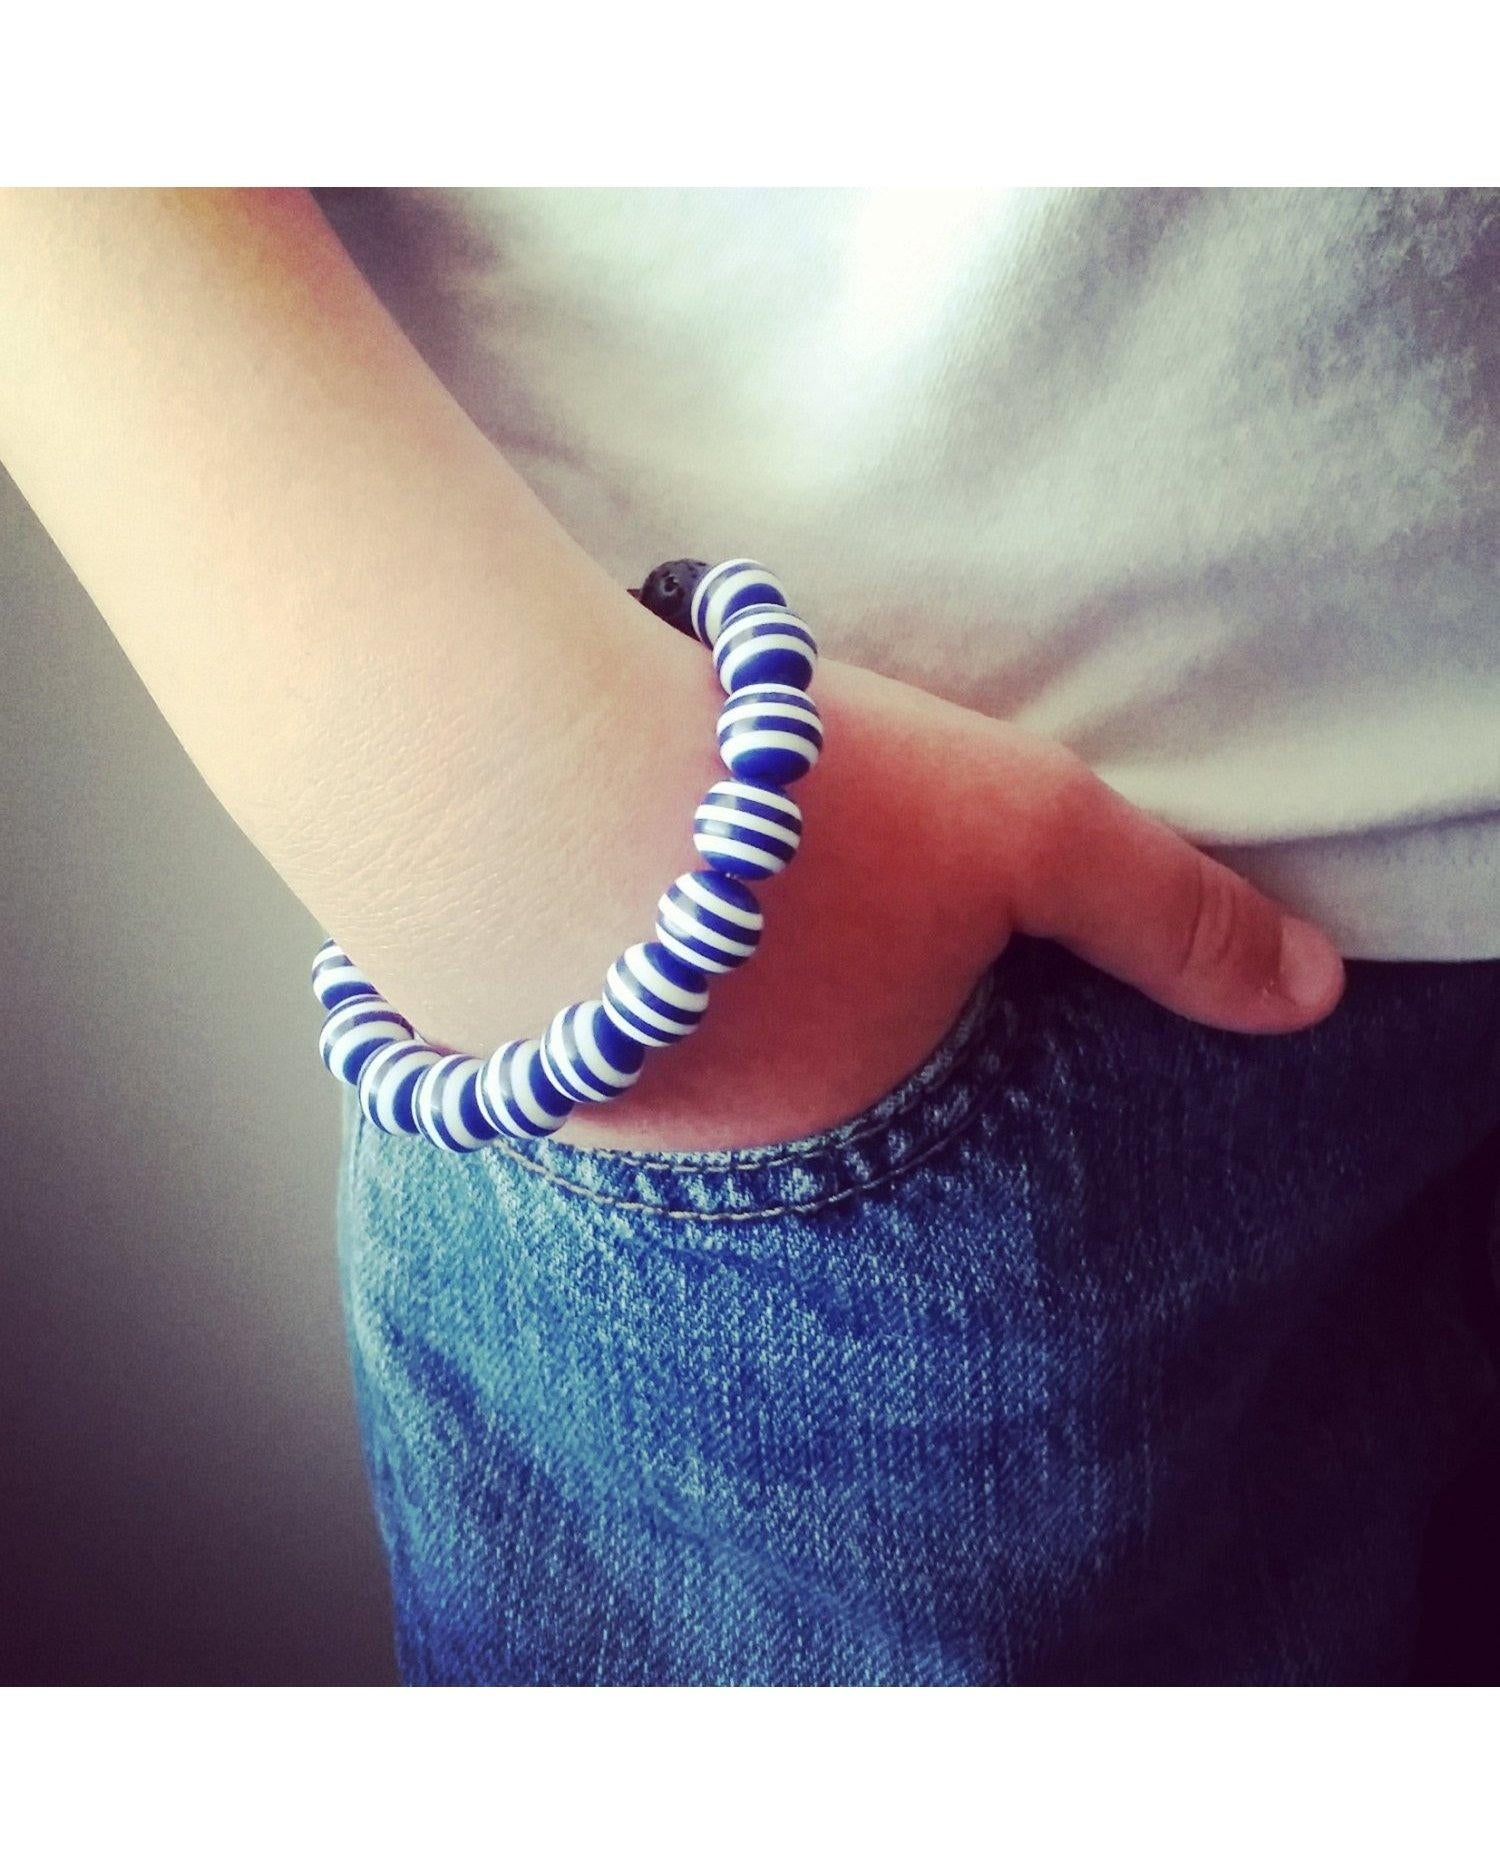 Girls/Kids/Boys Blue and White Striped and Lava Rock 10mm Bead Essential Oil Aromatherapy Diffuser Stretch Bracelet K034 - Essentially Elegant